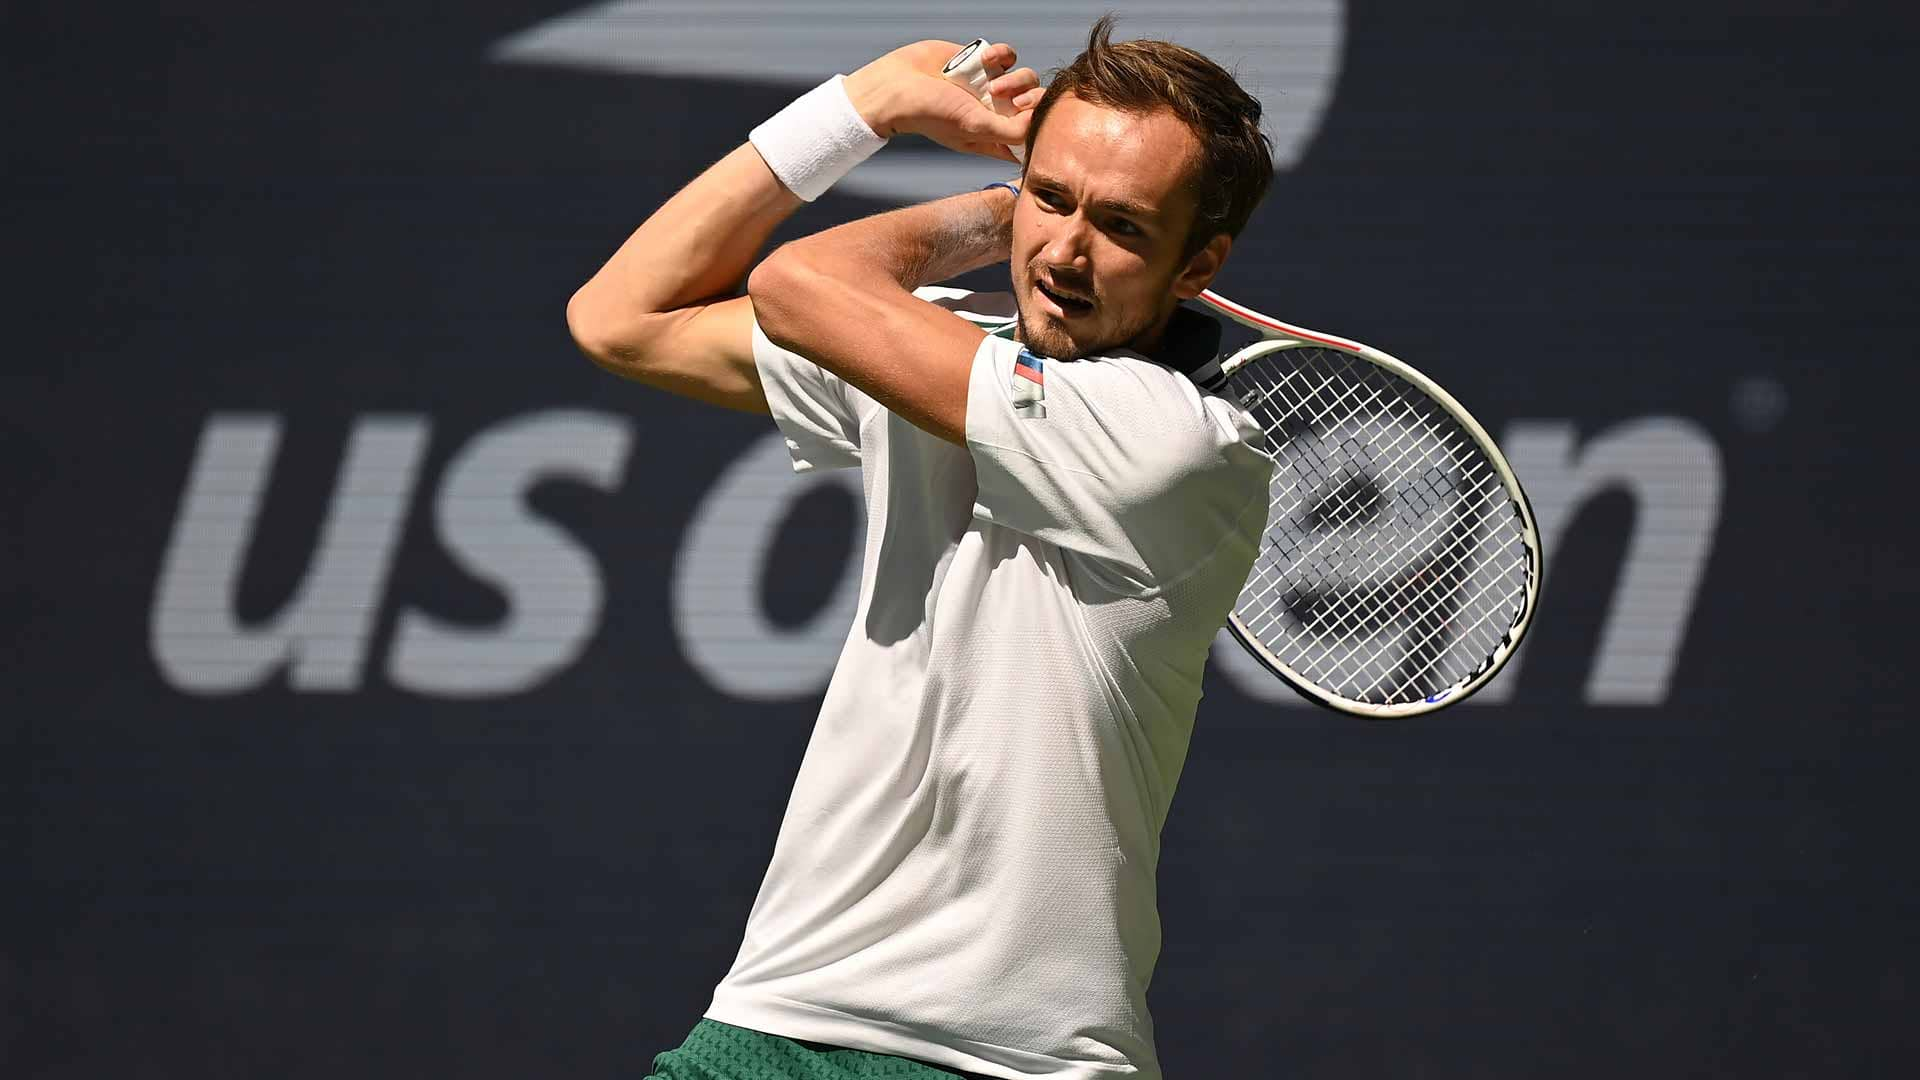 """<a href='https://www.atptour.com/en/players/daniil-medvedev/mm58/overview'>Daniil Medvedev</a>""""><br /><em><sup>Photo Credit: Garrett Ellwood/USTA<br /></sup></em><strong>From a coaching perspective, what have you learned from Daniil's previous runs this deep in majors, including his two major finals?<br /></strong>My mindset is the same since I'm a kid. I try to do the best I can do and perform in everything I can do. I didn't learn so many things about the performance. For me, it's the same. But what I learned is the question I have in myself about players.</p> <p>When you have a player like Daniil, it's to try to understand or know what makes the difference between Daniil for example or another player in the Top 30 or Top 100, to realise what makes the difference between these guys in their potential. That's an interesting question, because you can realise that there is some part of these top players that they're born with this and some players don't have this and that makes success tougher to get.</p> <p><strong>Have you studied the Big Three to try to understand what allows them to perform at their best in the big moments?<br /></strong>Of course, I see it every day with Daniil, and especially when he plays big matches like he already did many times and like he will do tomorrow. In matches, adversity makes him find the best in himself. The match is the most important part to find his best and sometimes during practice, you cannot reach this level of adversity. Matches make these players better for sure.</p> <p>All these experiences for players, it's like somewhere inside them. Of course they use it like something invisible, like self confidence, that they already lived something like this to help them win that kind of match.</p> <p><strong>How different do you believe Daniil is as a player compared to a couple years ago?<br /></strong>You get more mature, more experience. And when we talk about experience, it's the ability to play this kind of match with less st"""